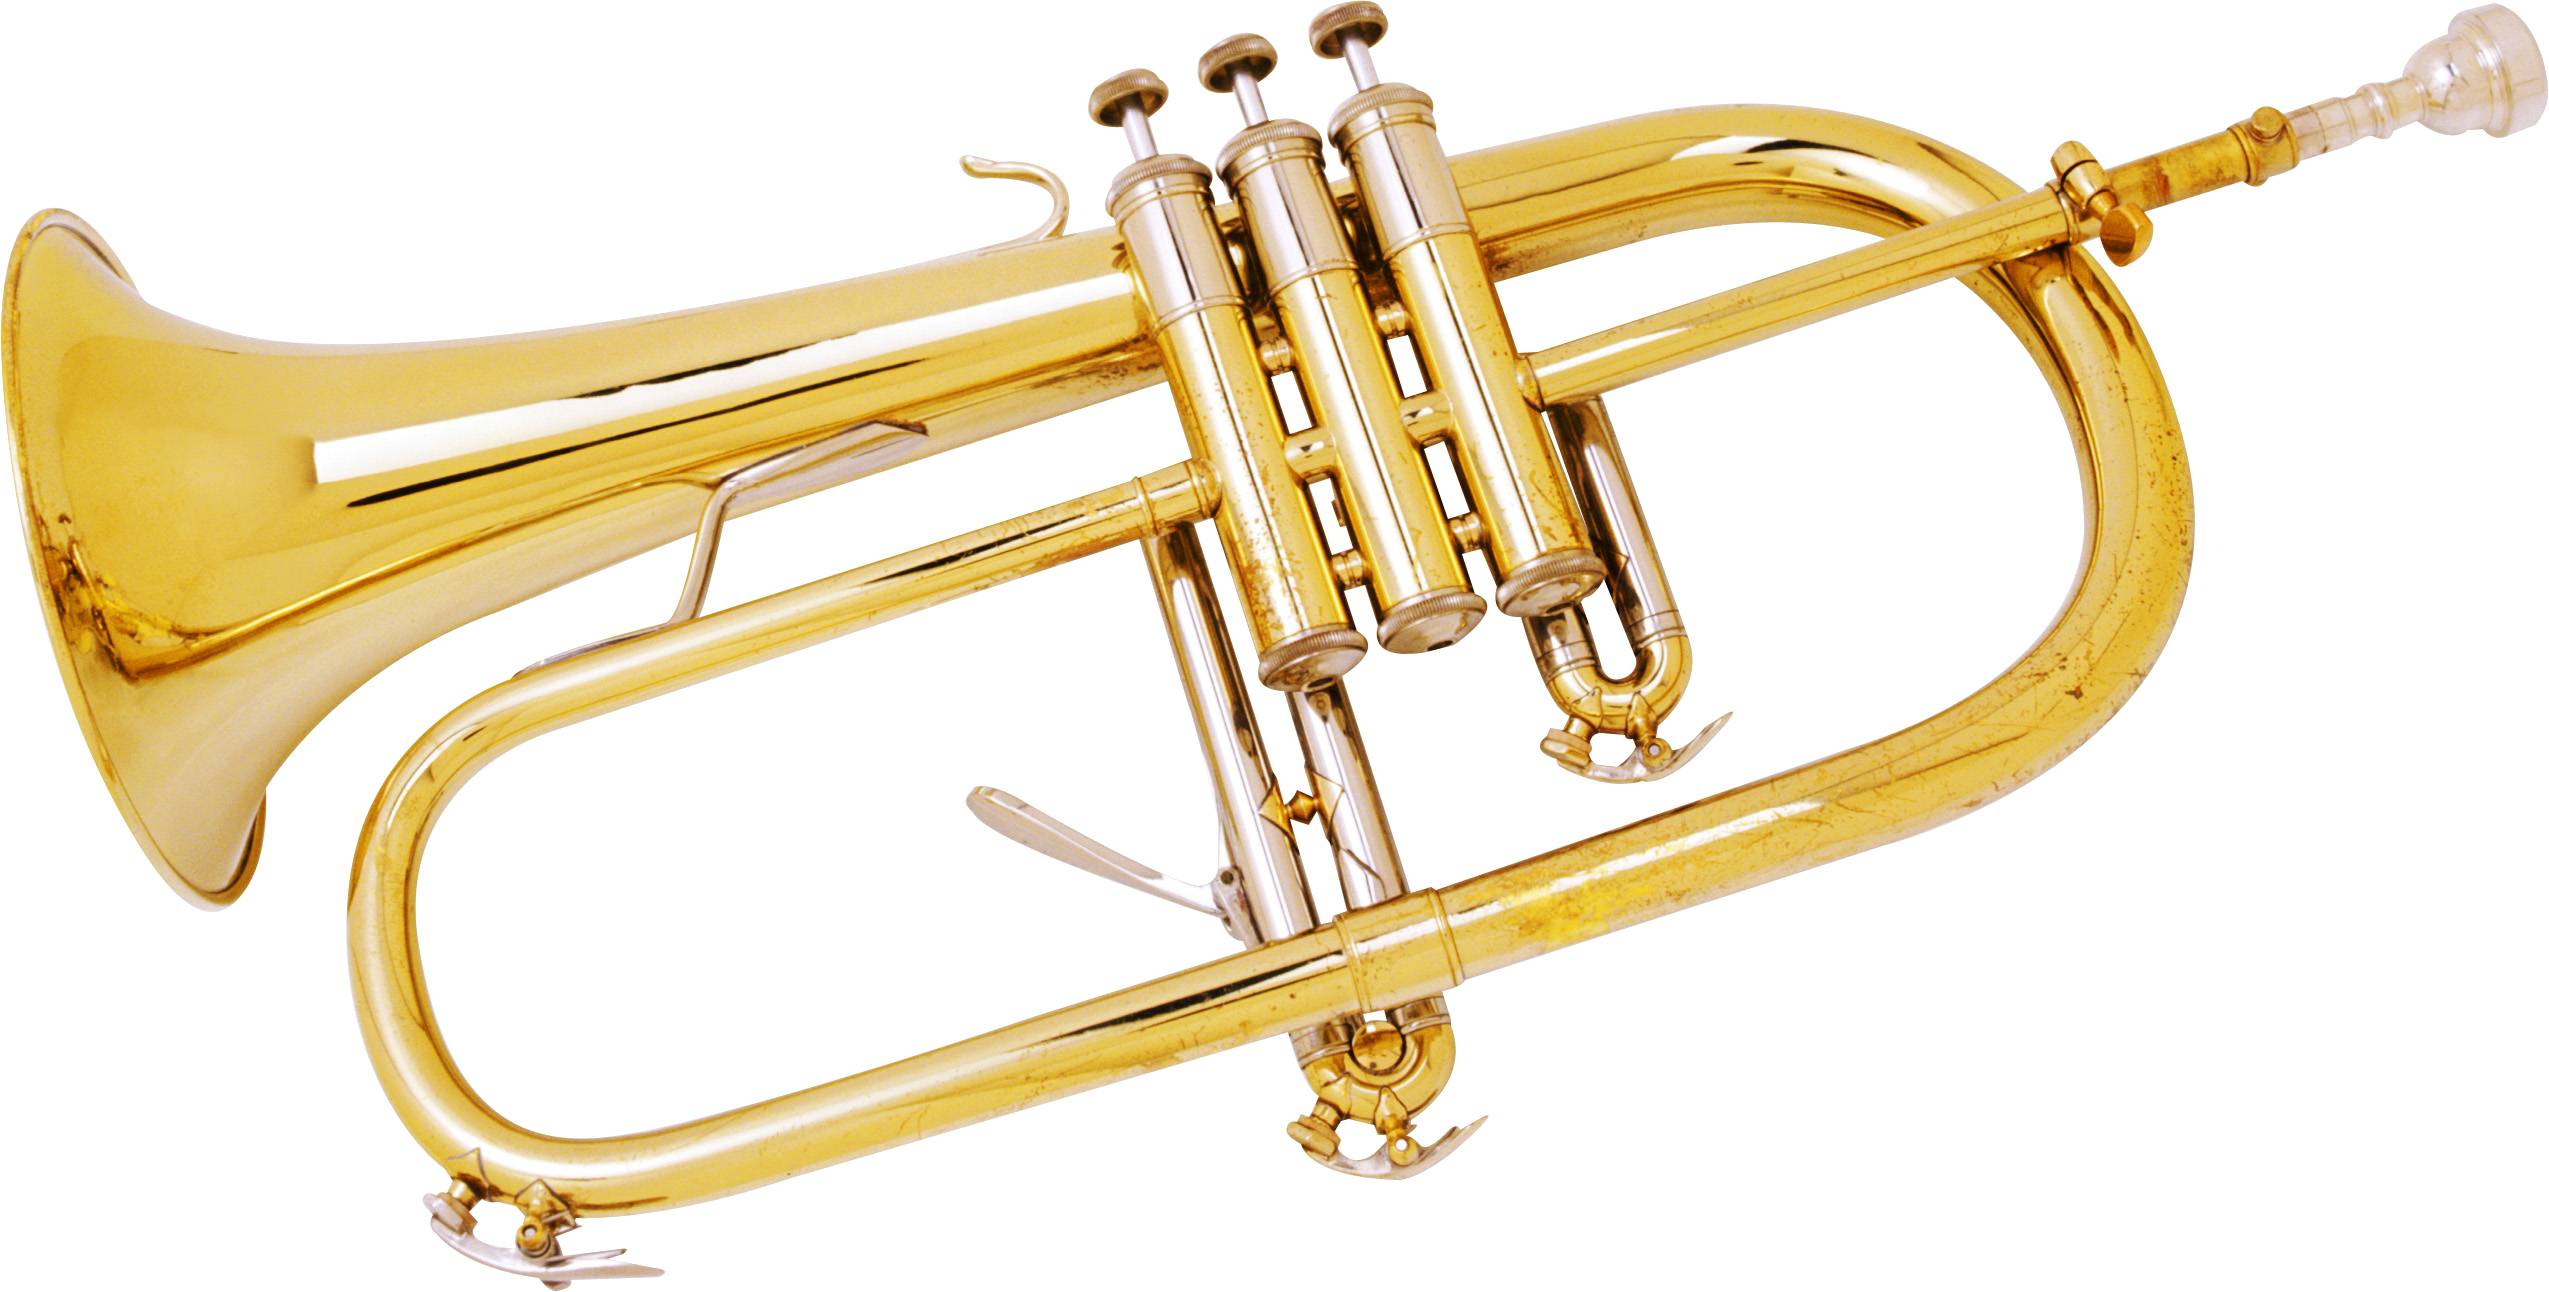 trumpet and saxophone png images available for download crazypngm crazy png images #29490